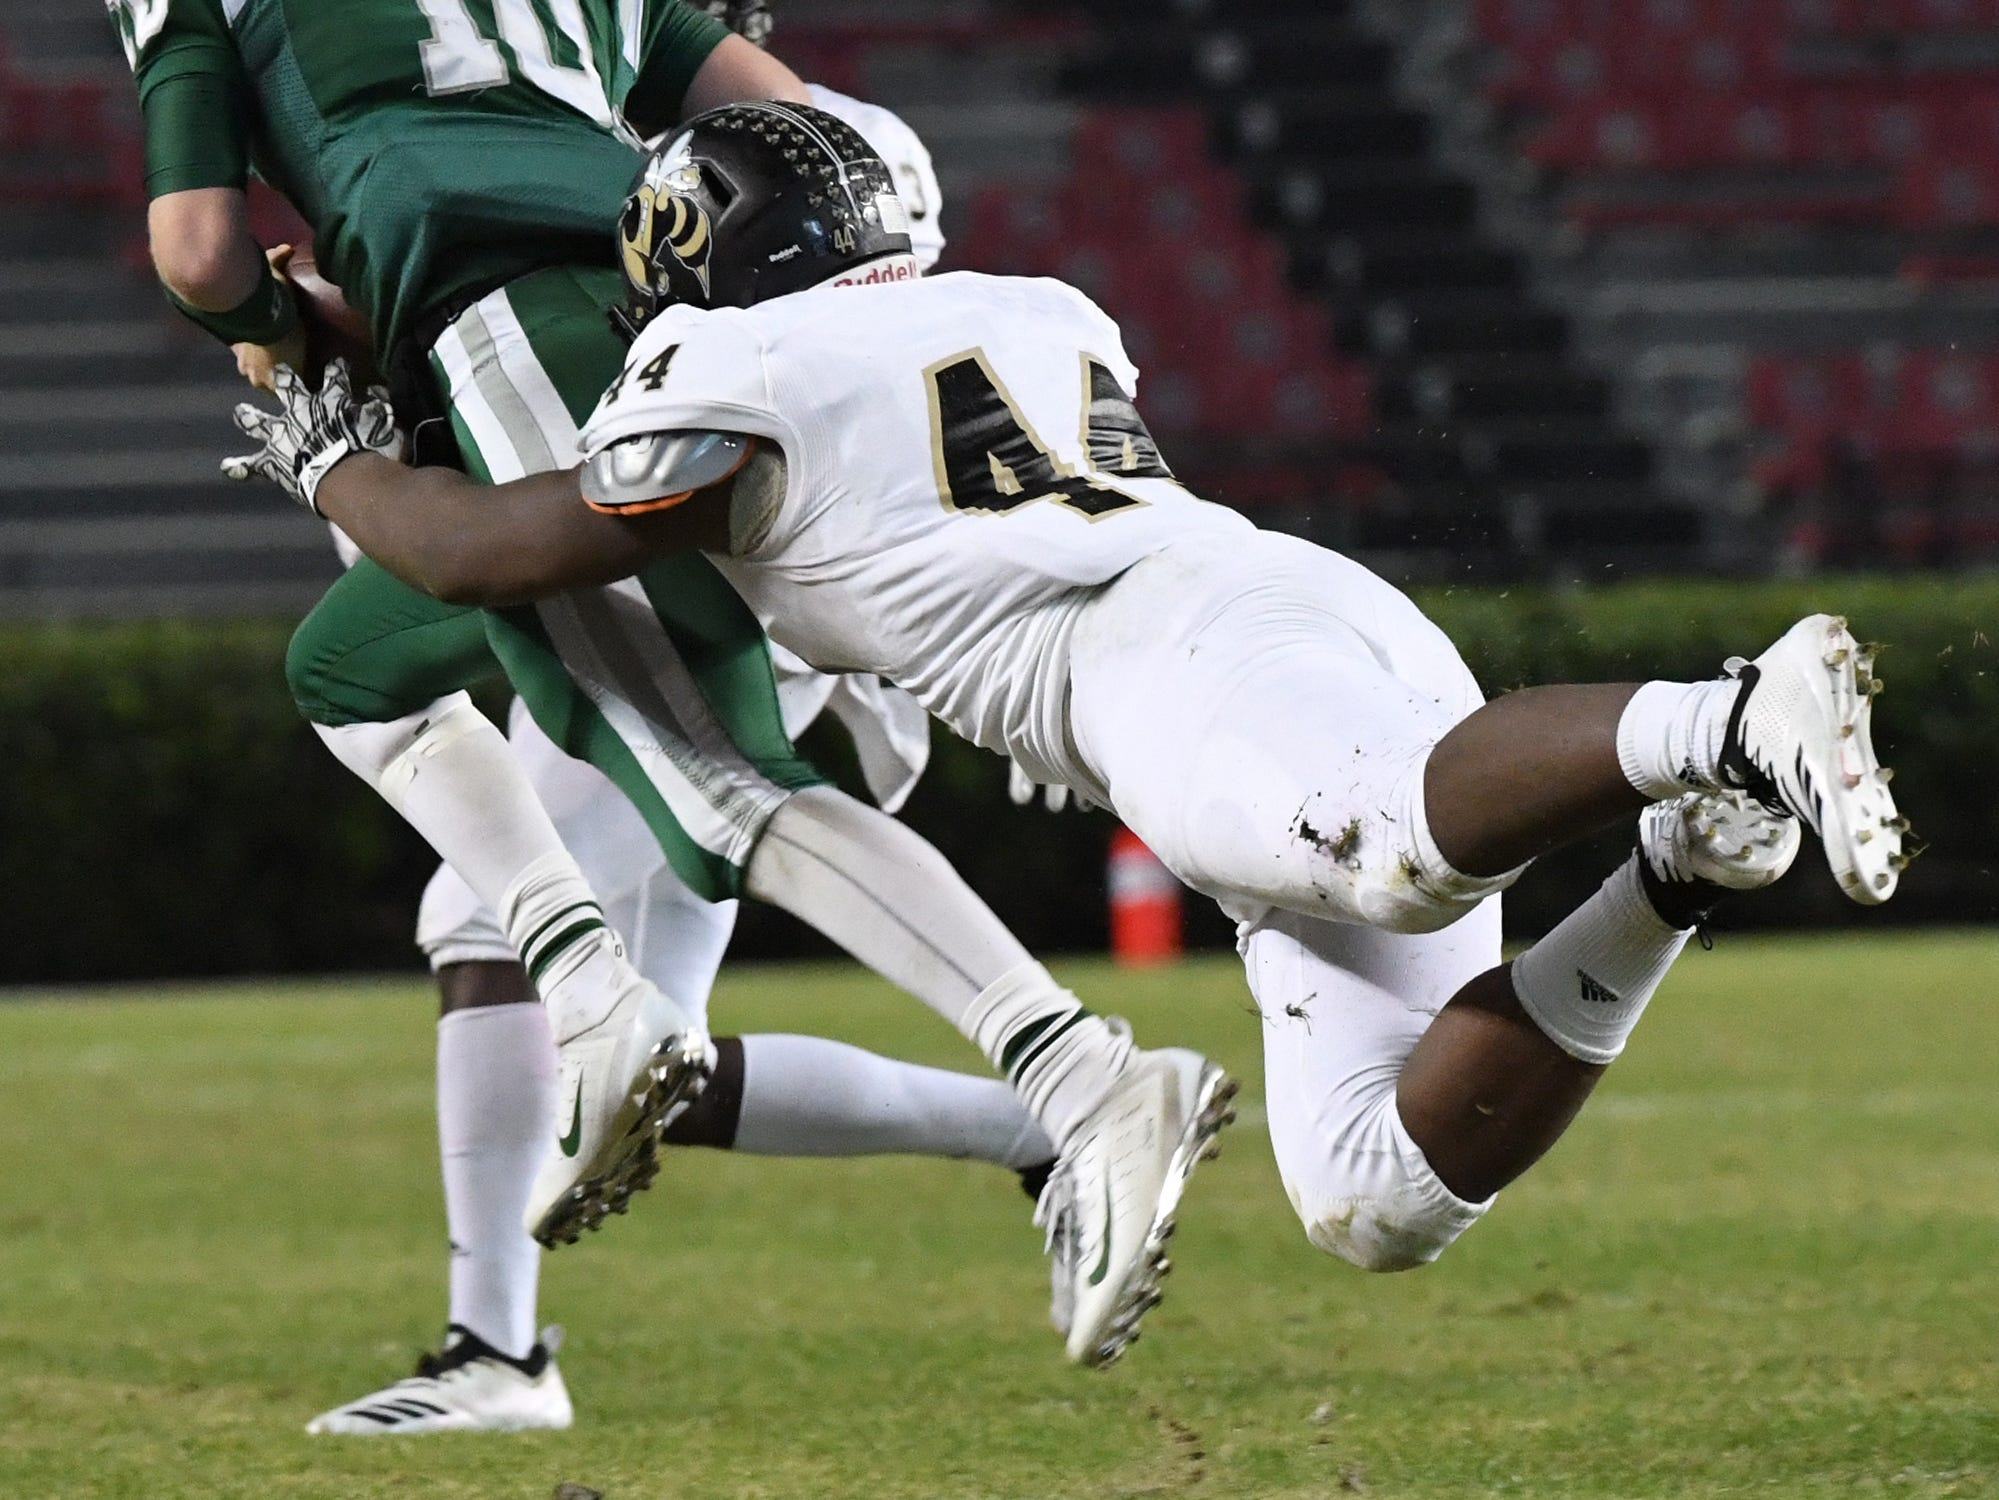 TL Hanna junior Cameron Chandler (44) dives to tackle Dutch Fork junior Tyler Olenchuk(10) during the third quarter of the Class AAAAA state championship game at Williams-Brice Stadium in Columbia Saturday, December 8, 2018.